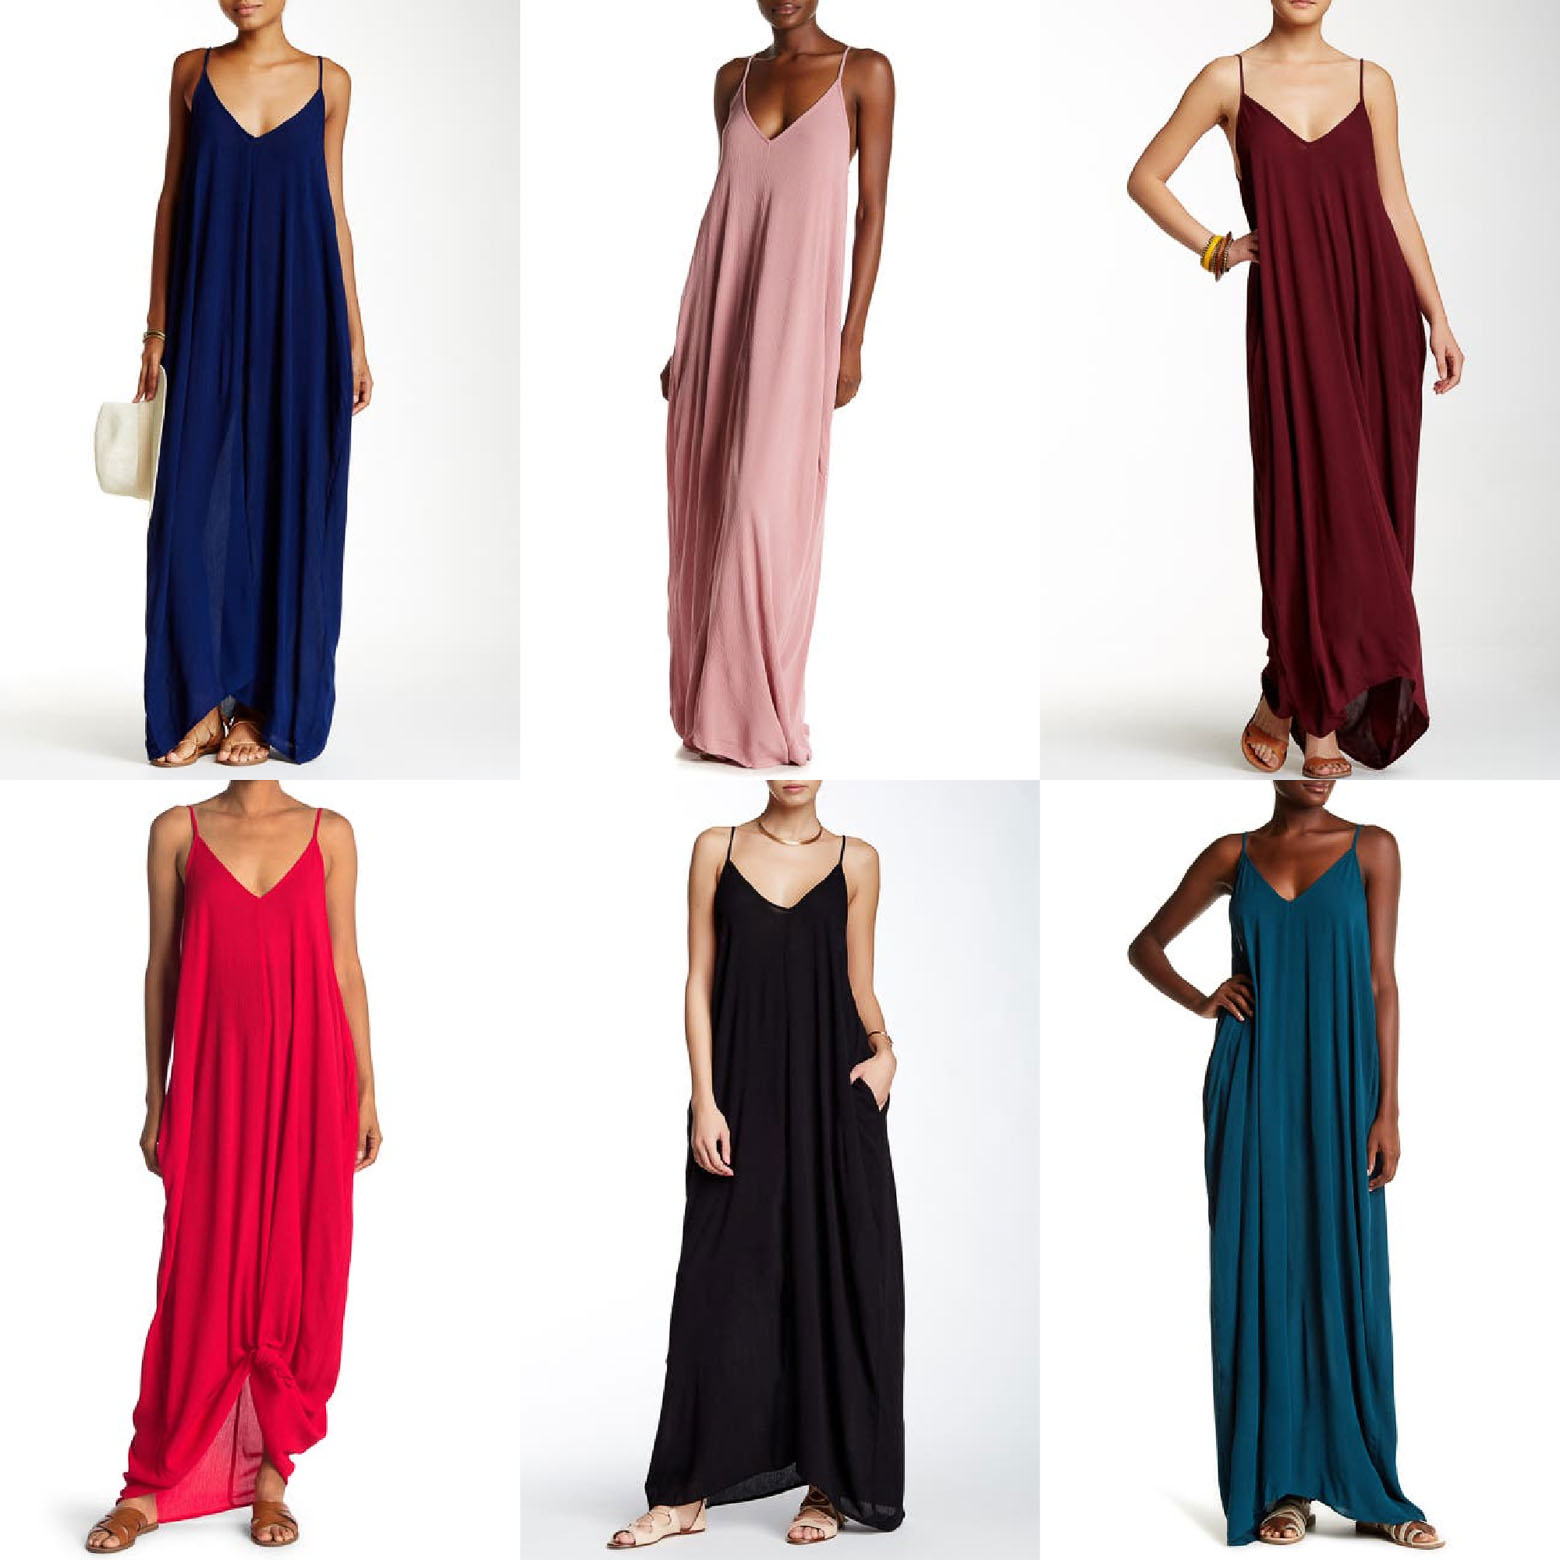 Perfect Inexpensive Maxi Dress for a Beach Vacation